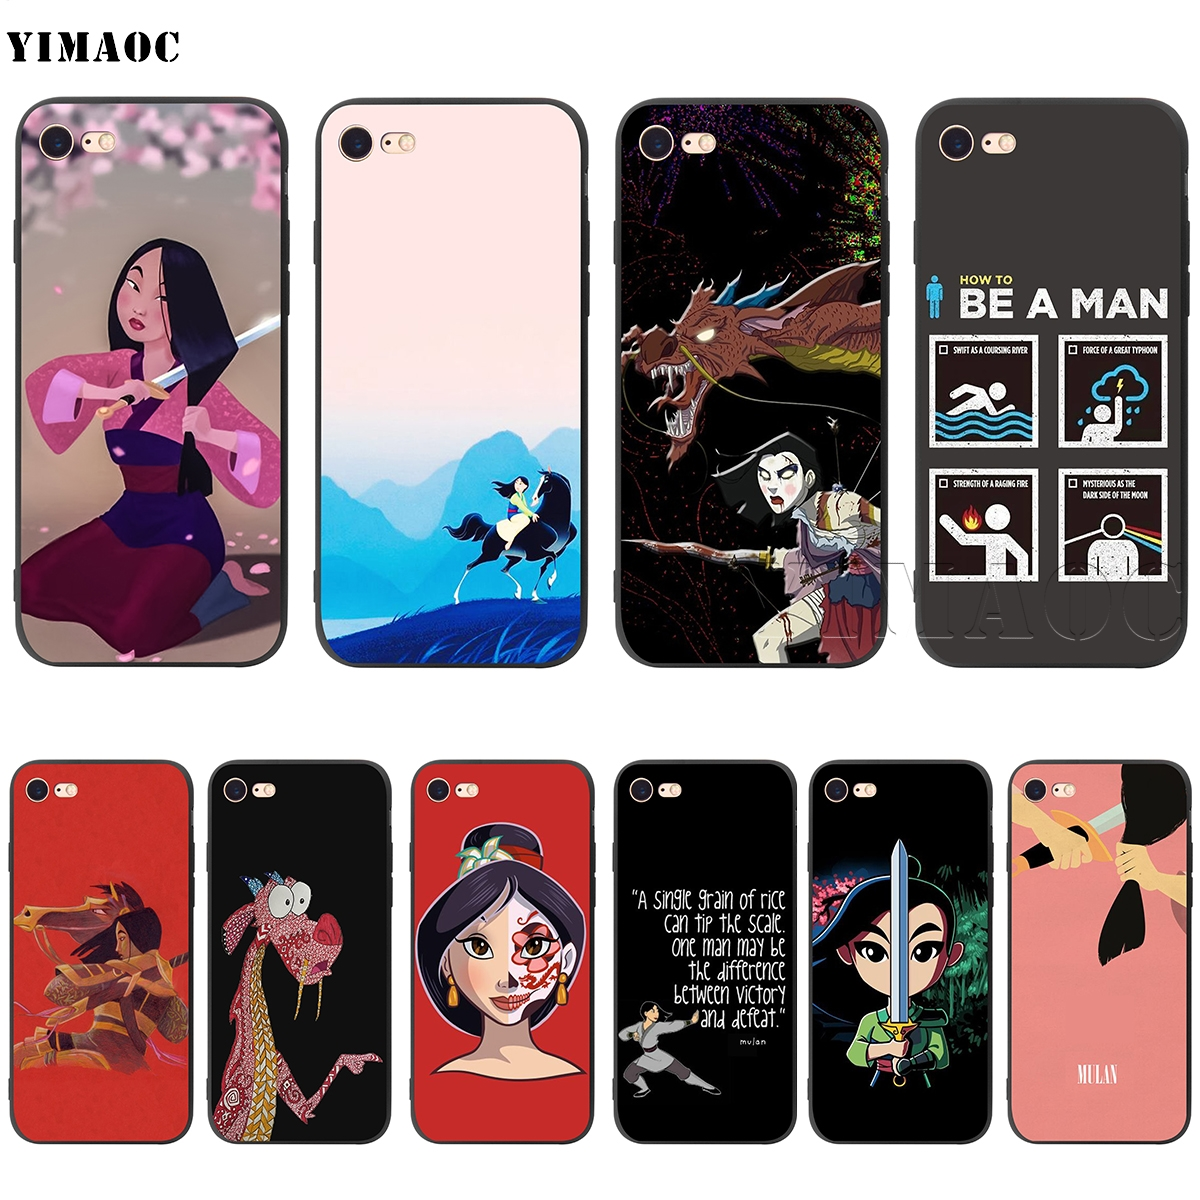 YIMAOC Cartoon Mulan Silicone Soft Case For IPhone XS Max XR X 8 7 6 6S Plus 5 5S SE